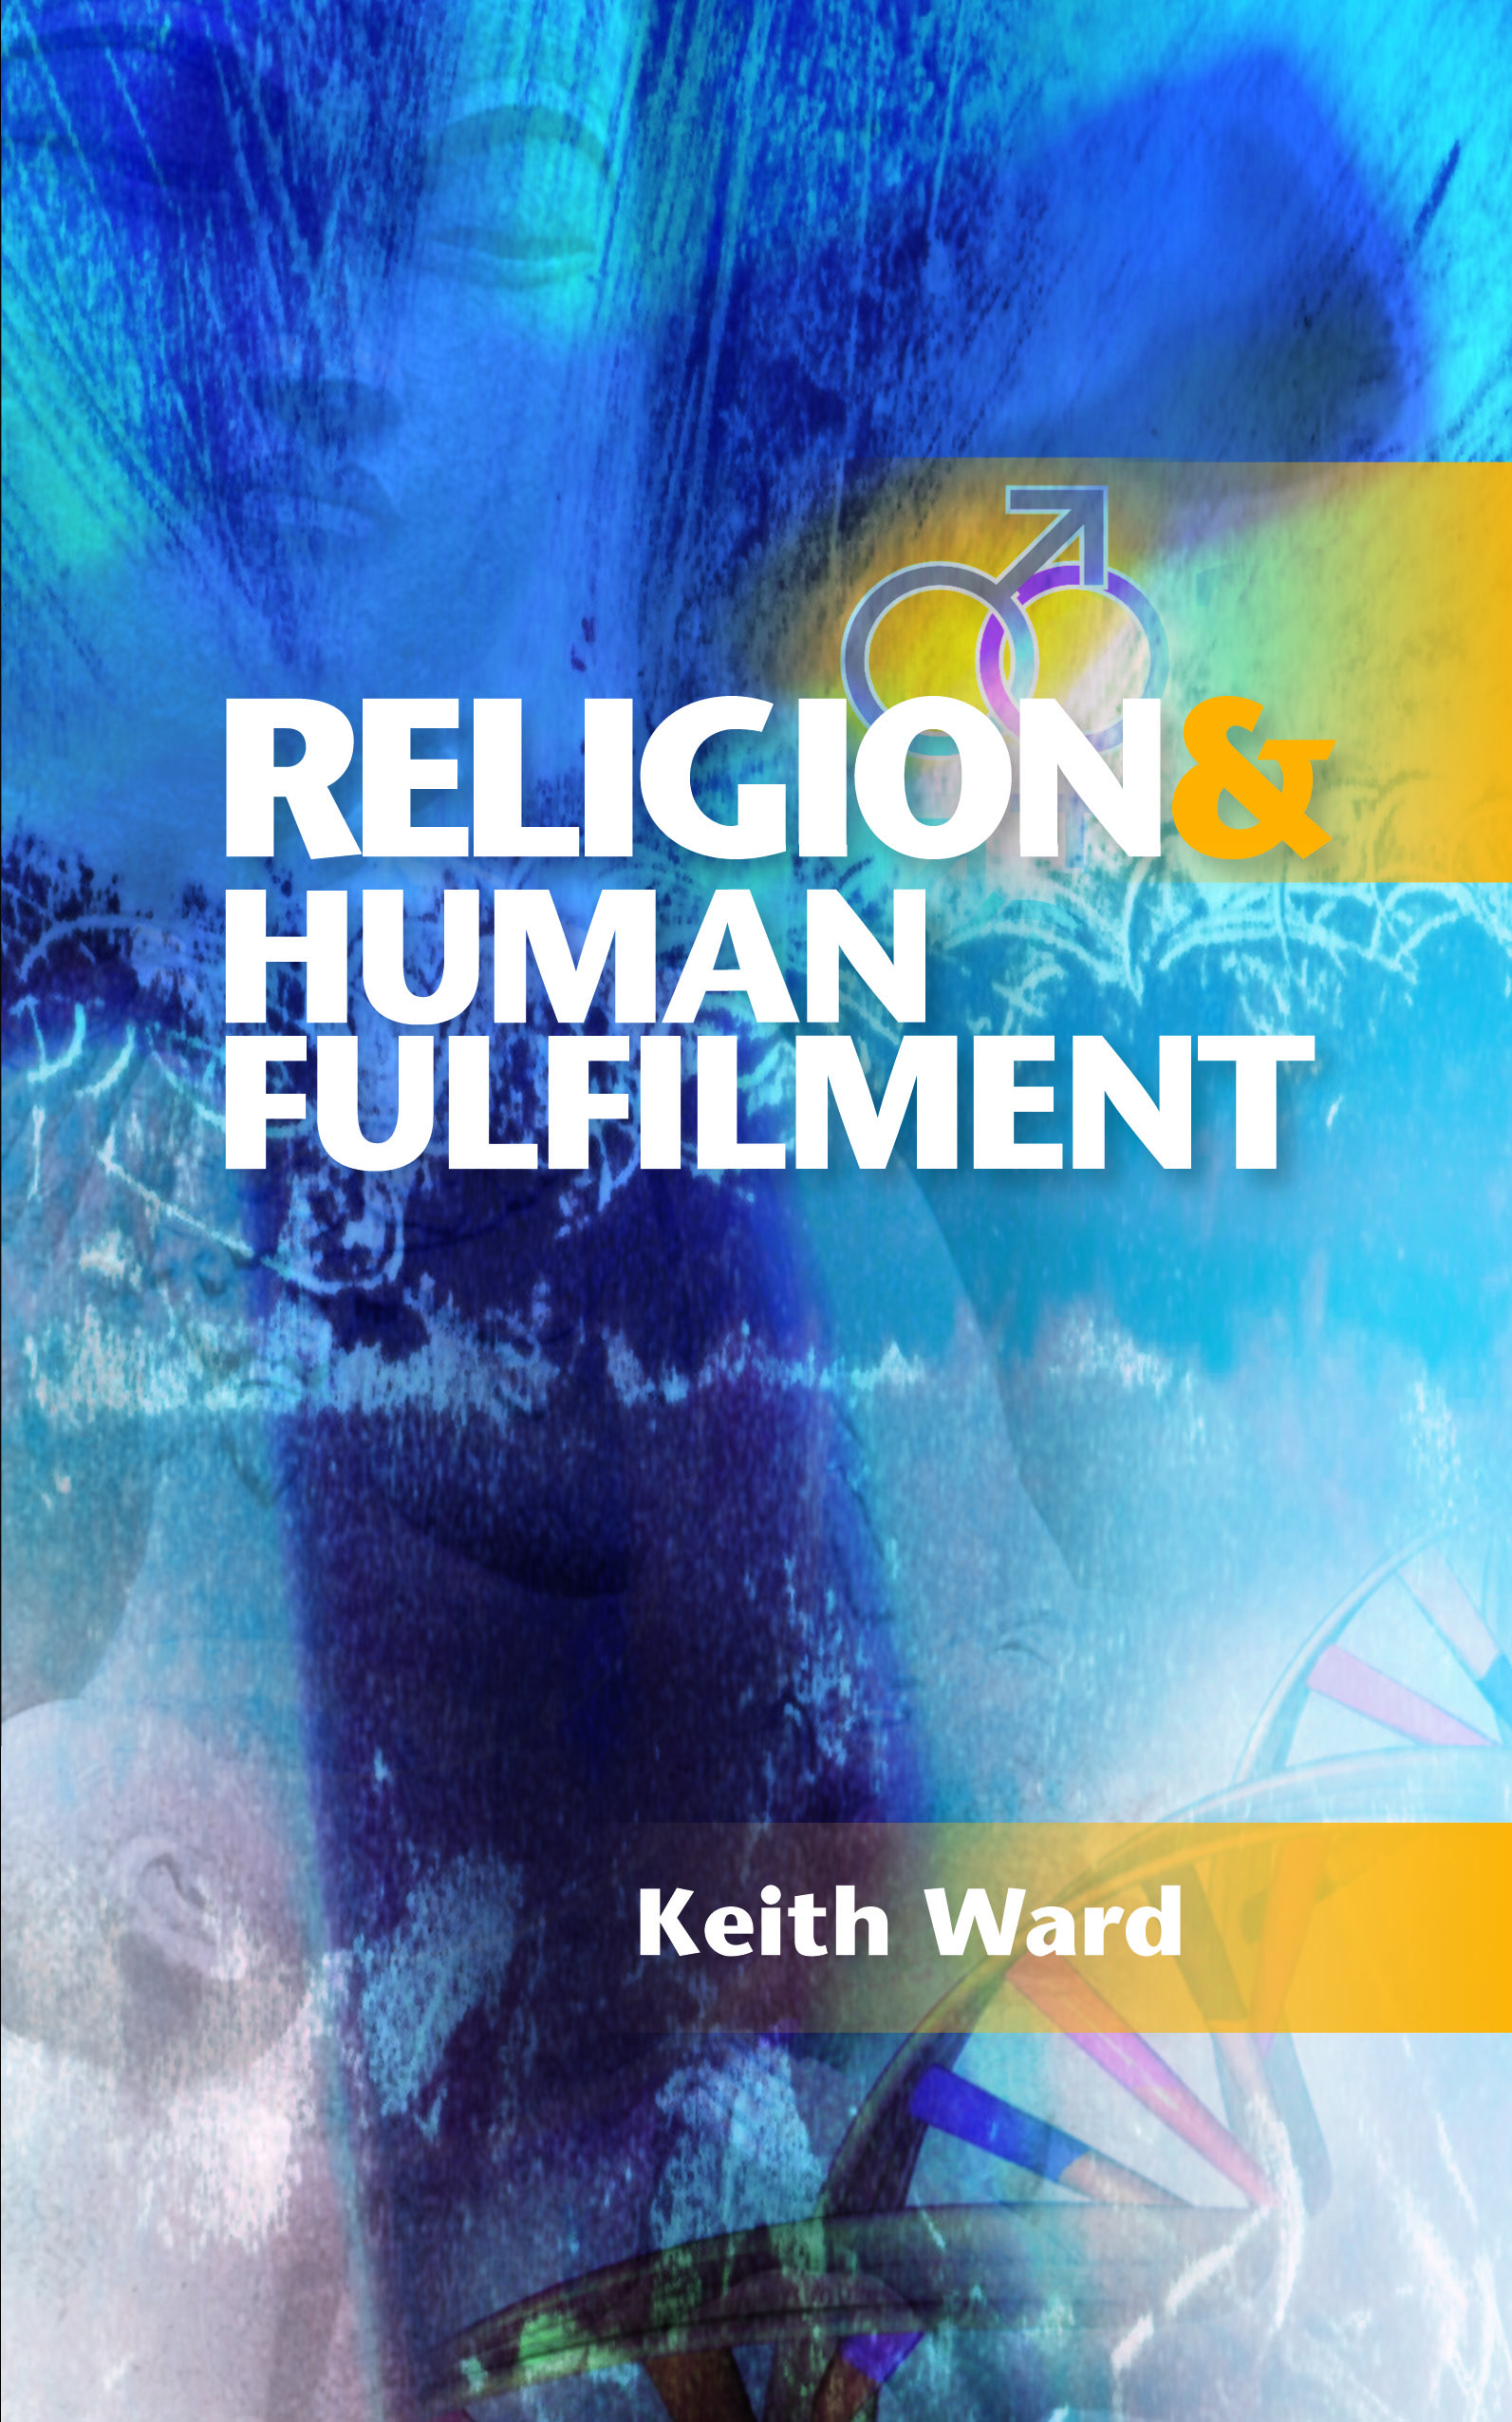 Religion and Human Fulfilment